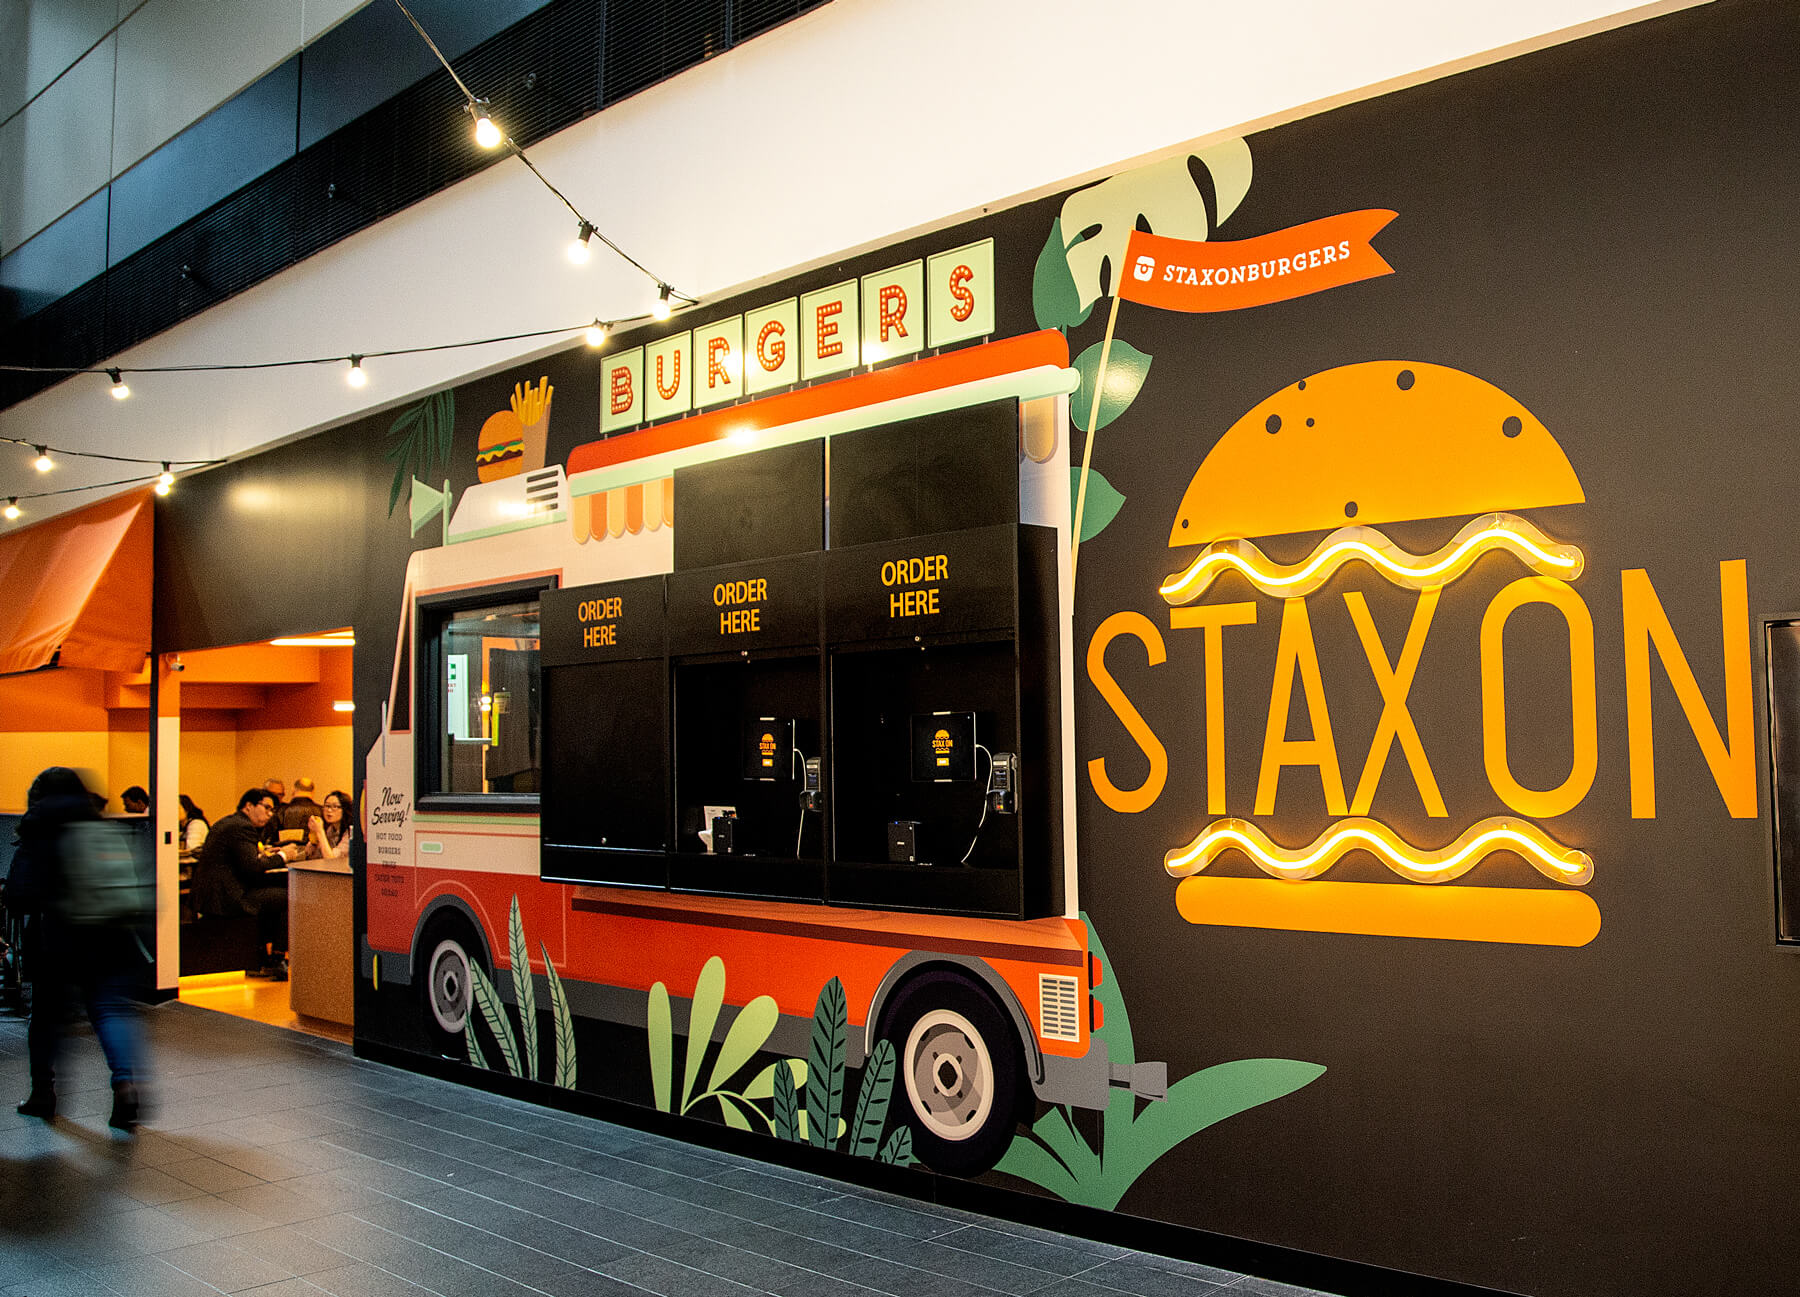 stax-on-burgers-brand-refresh-design-mural-1